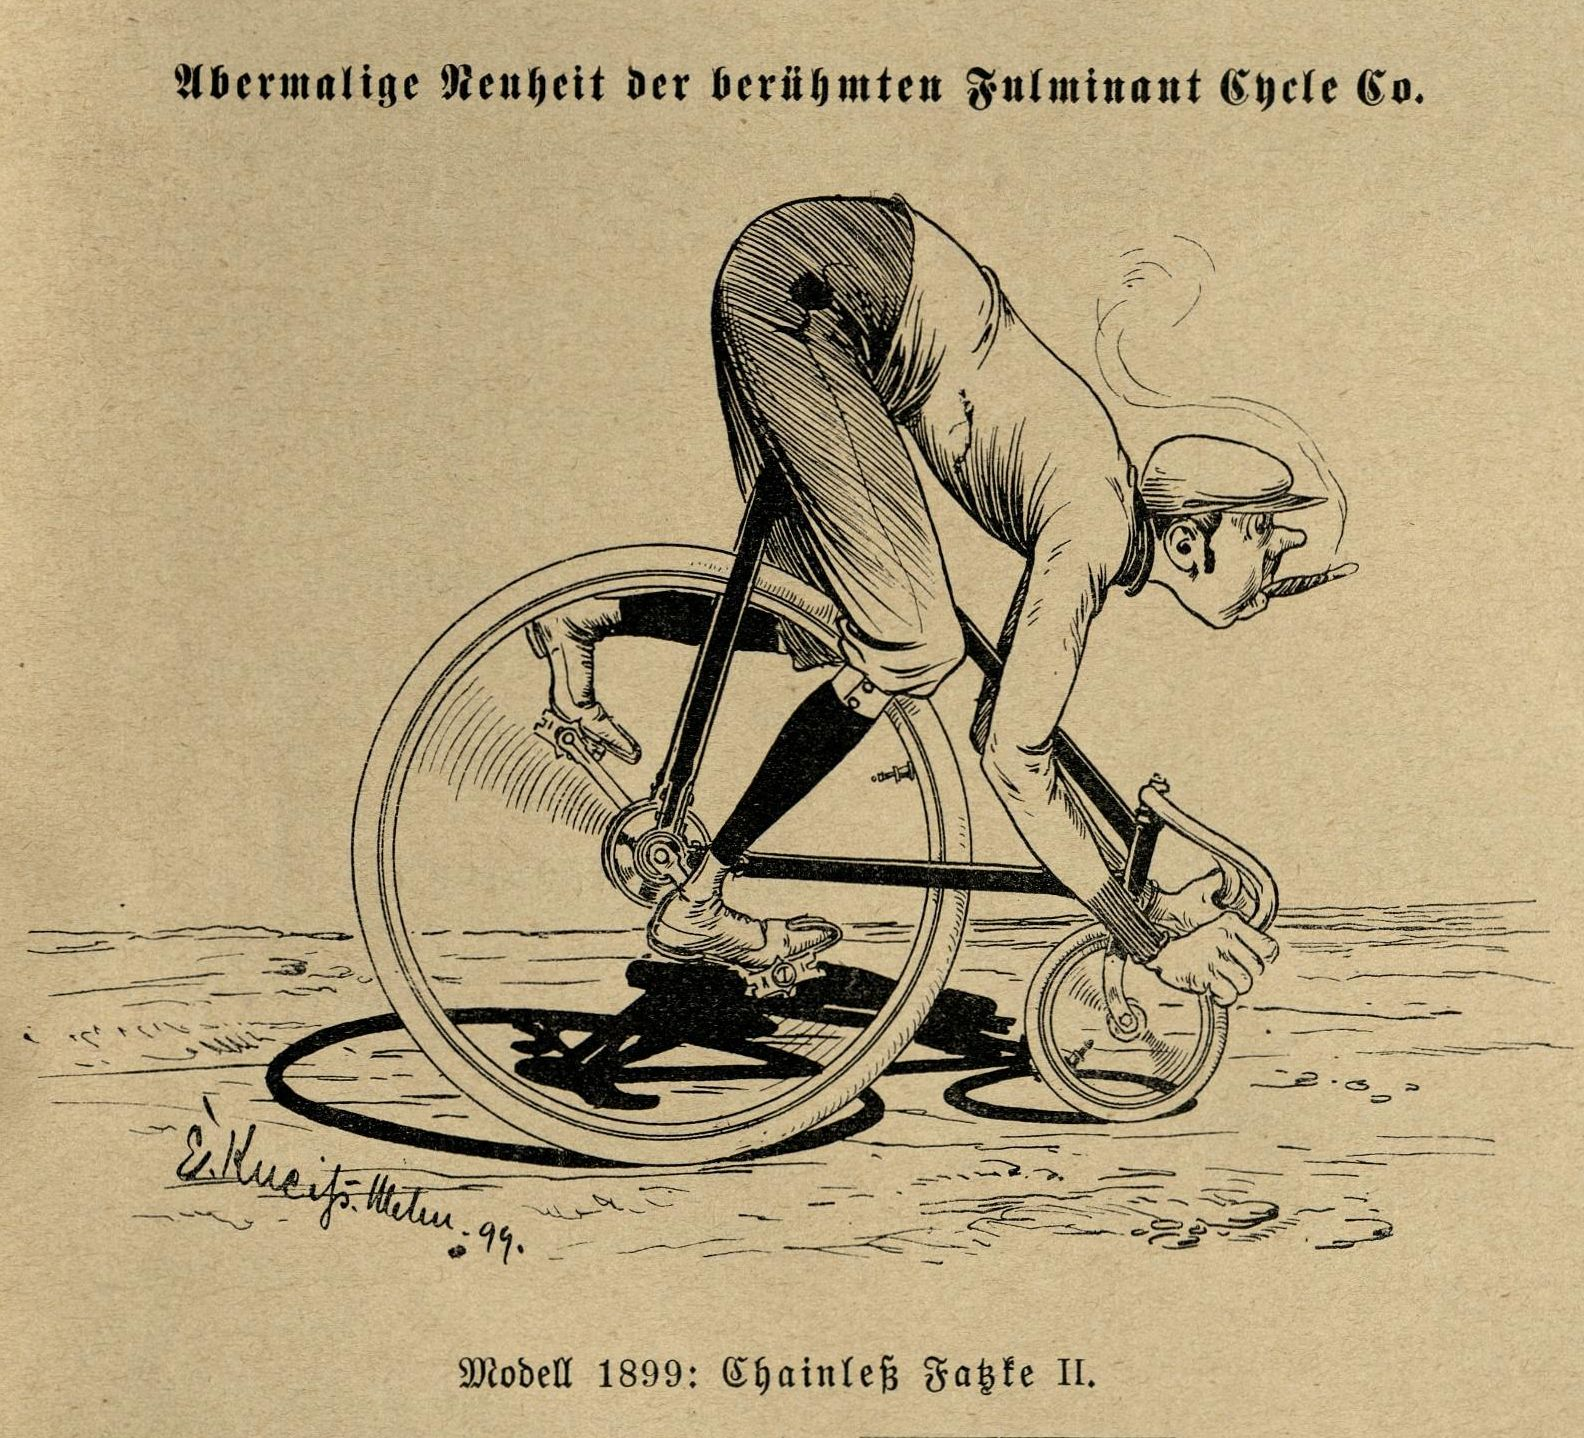 Bild: Fulminant Cycle Modell 1899: Chainless Fatzke II.